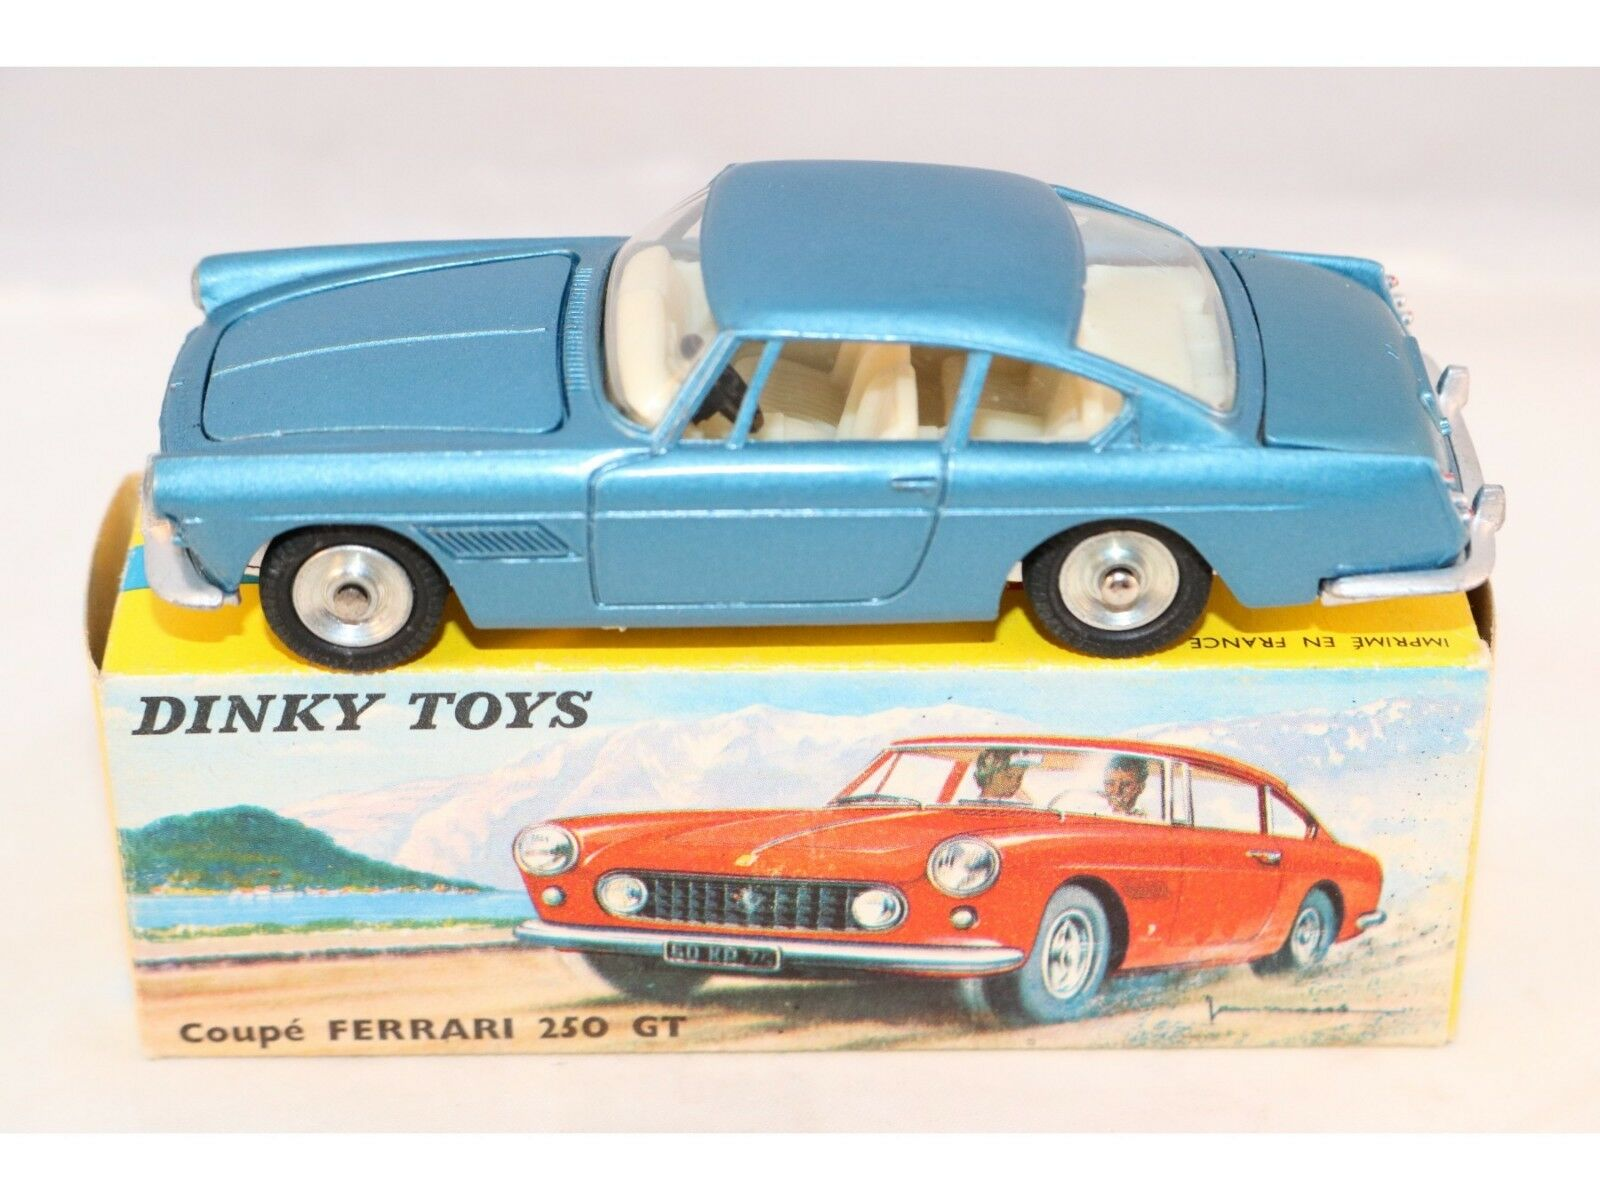 Dinky Toys 515 Ferrari 250 GT blu near mint in box very nice Ferrari